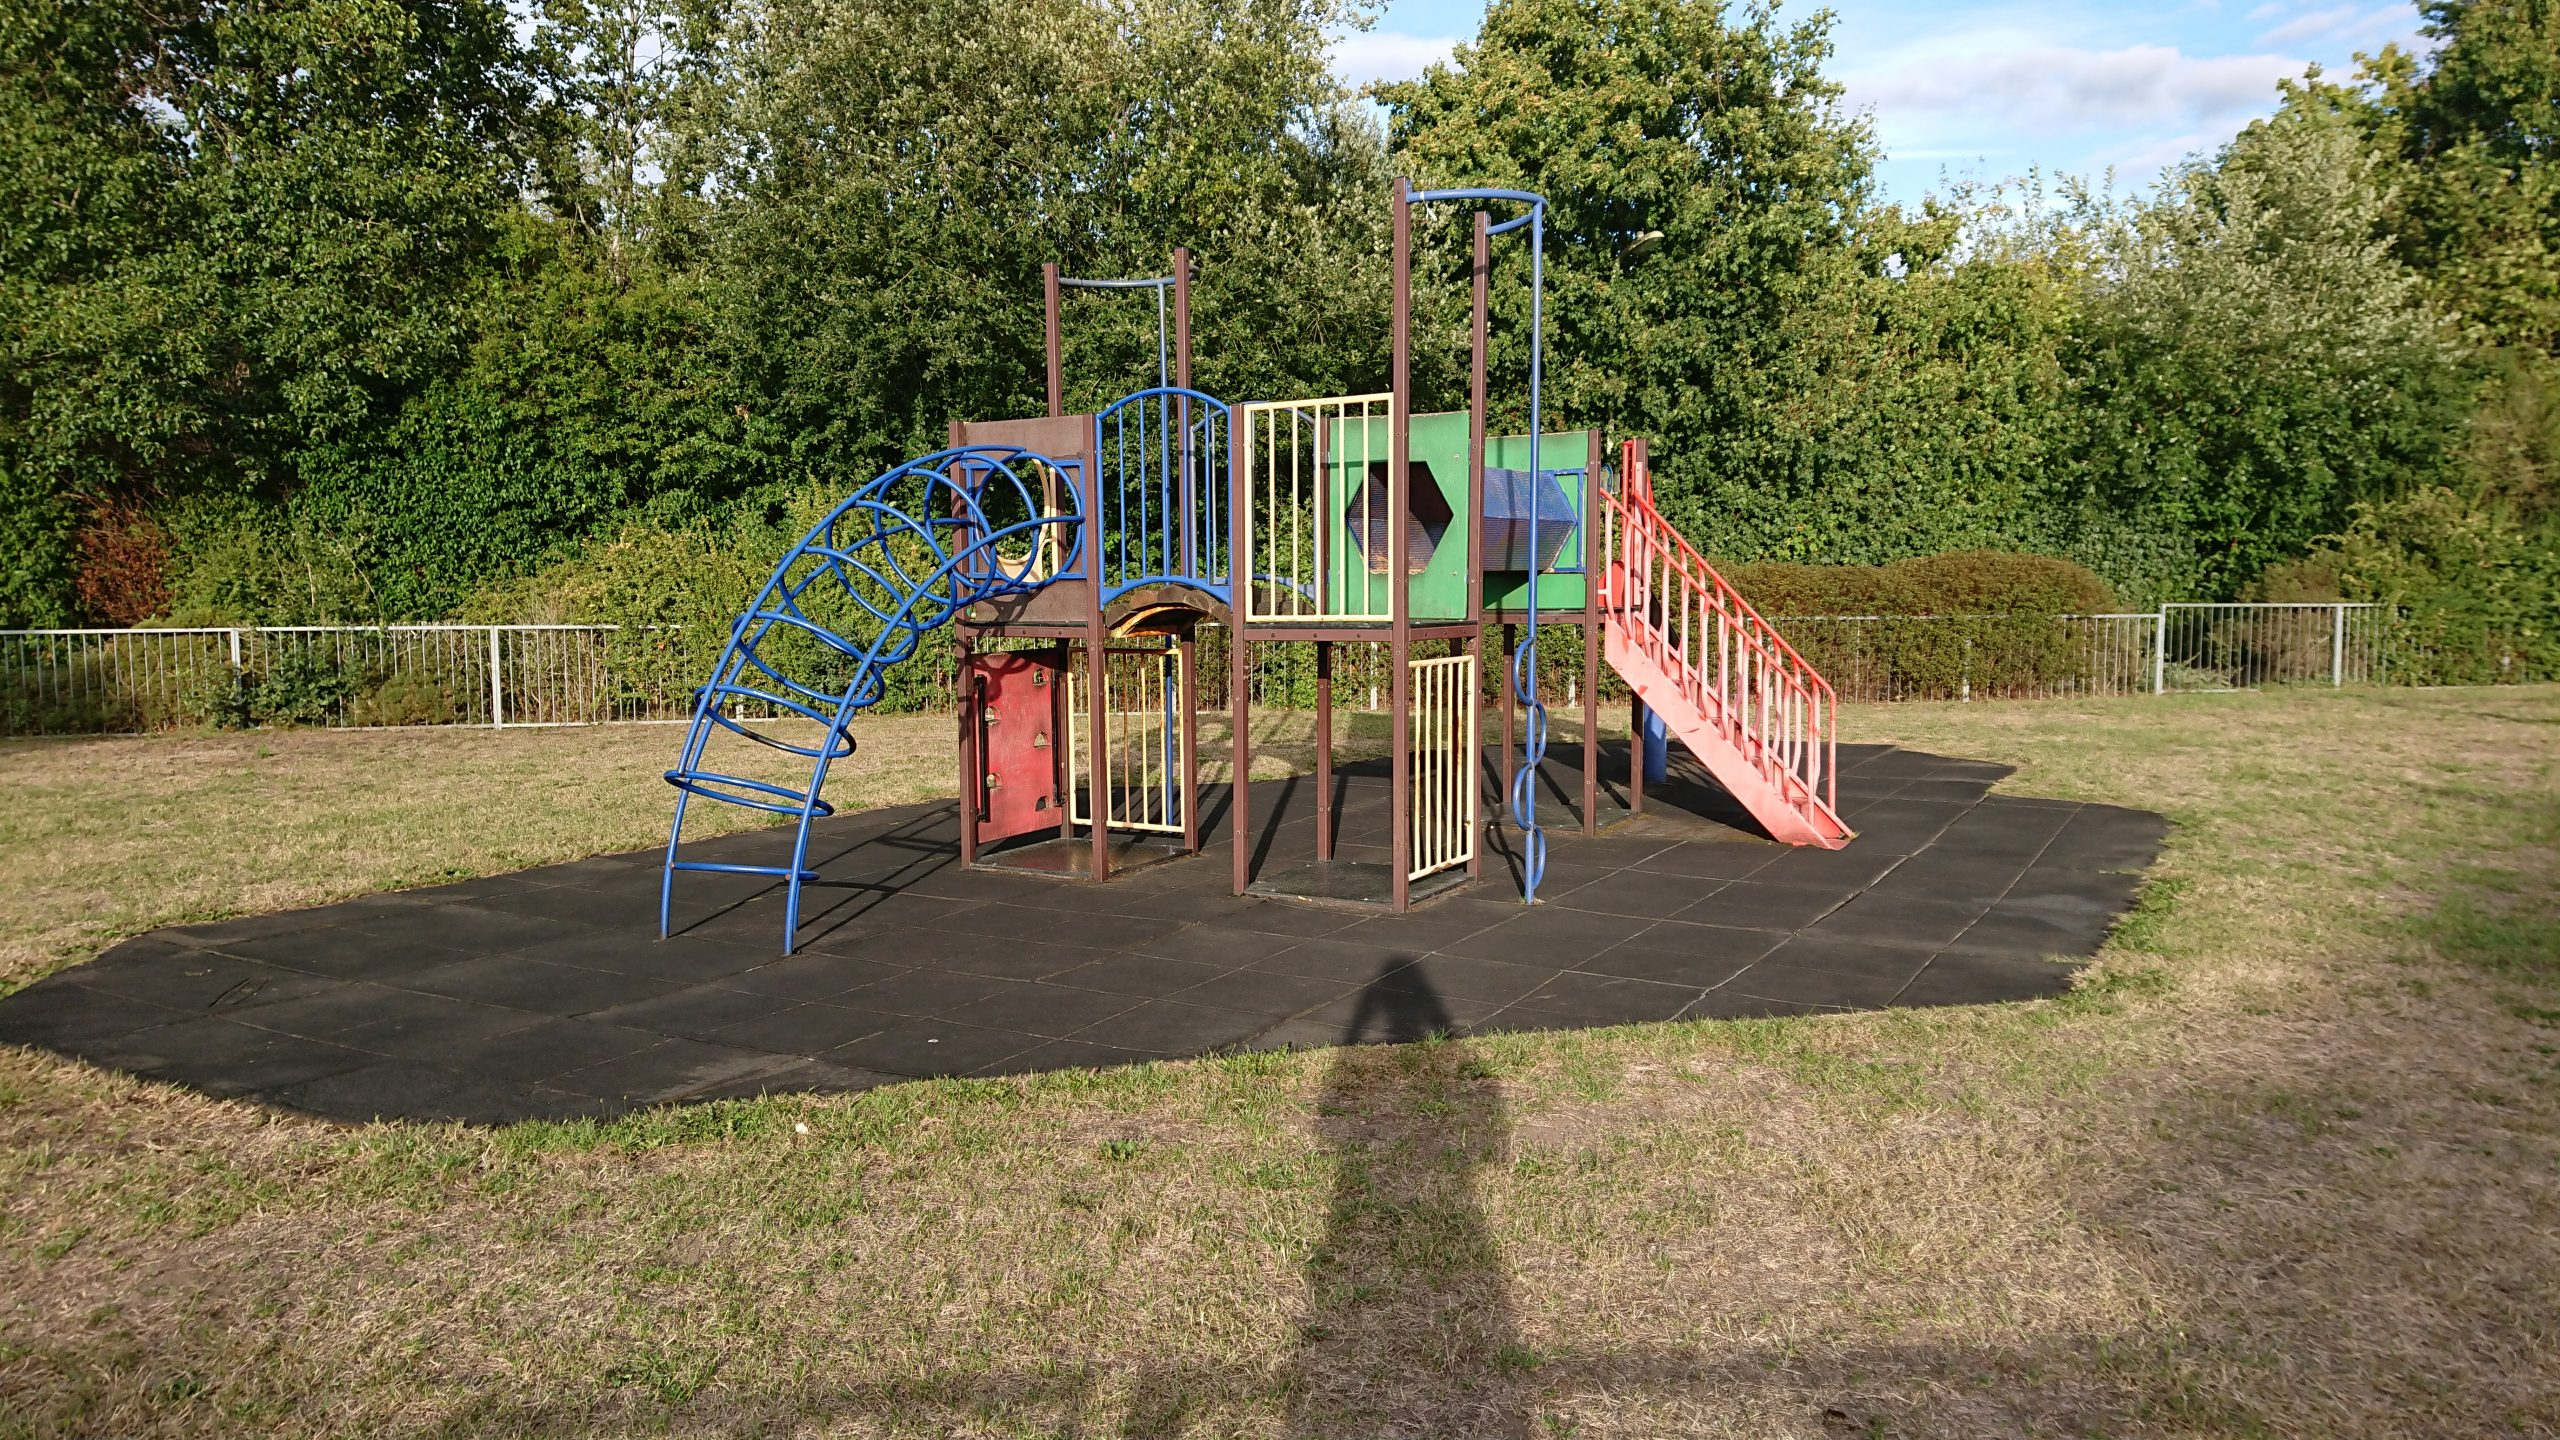 Cumbria Court Play Park